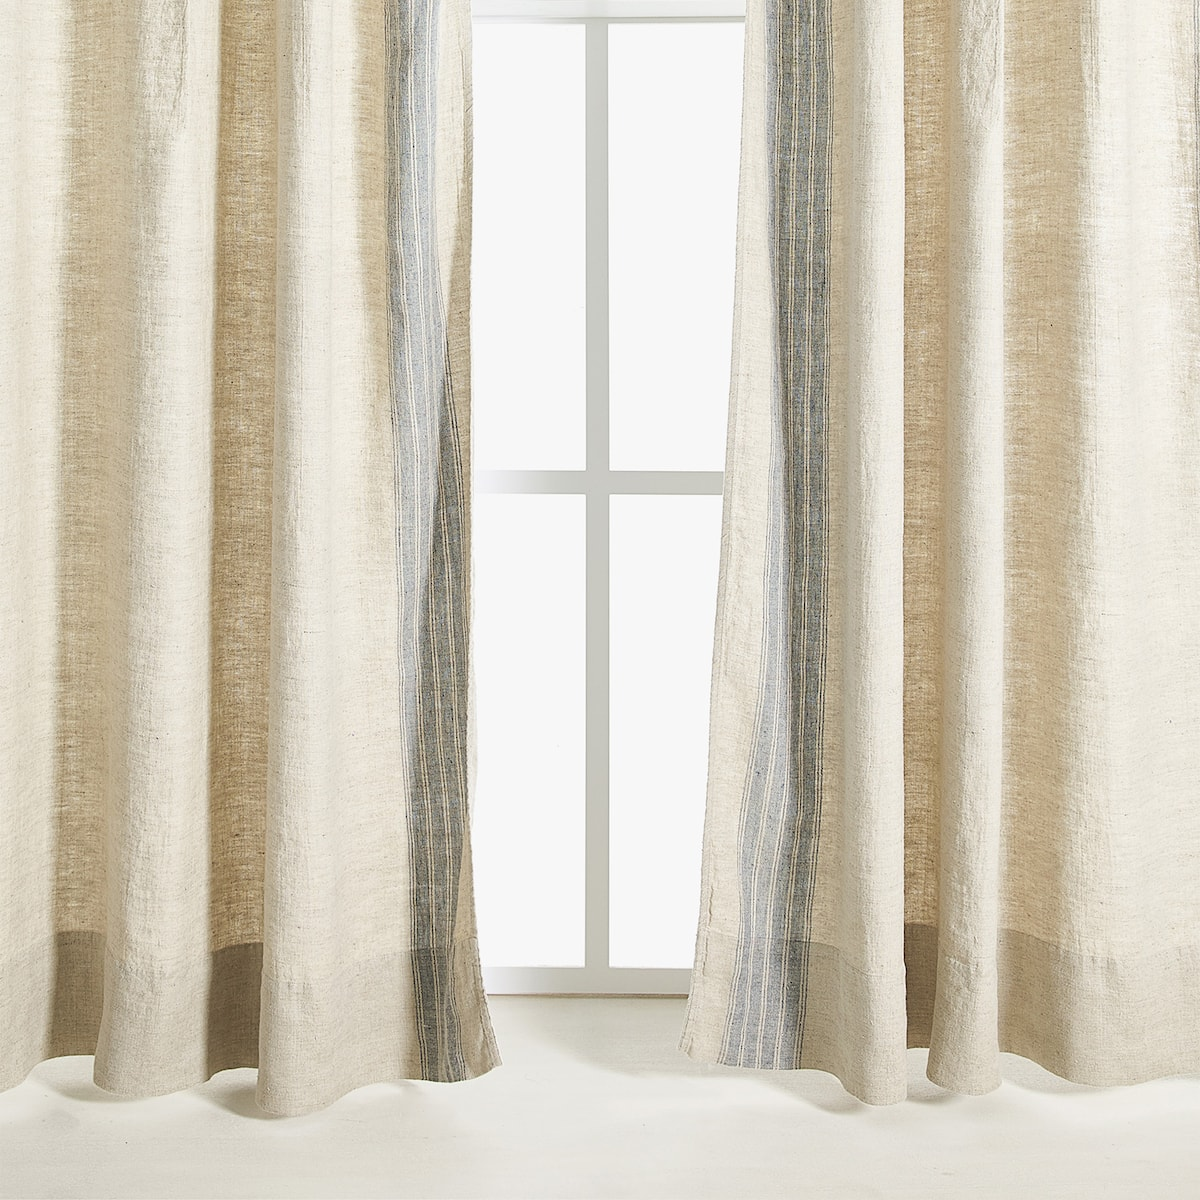 Image 1 Of The Product LINEN CURTAIN WITH STRIPED PANEL